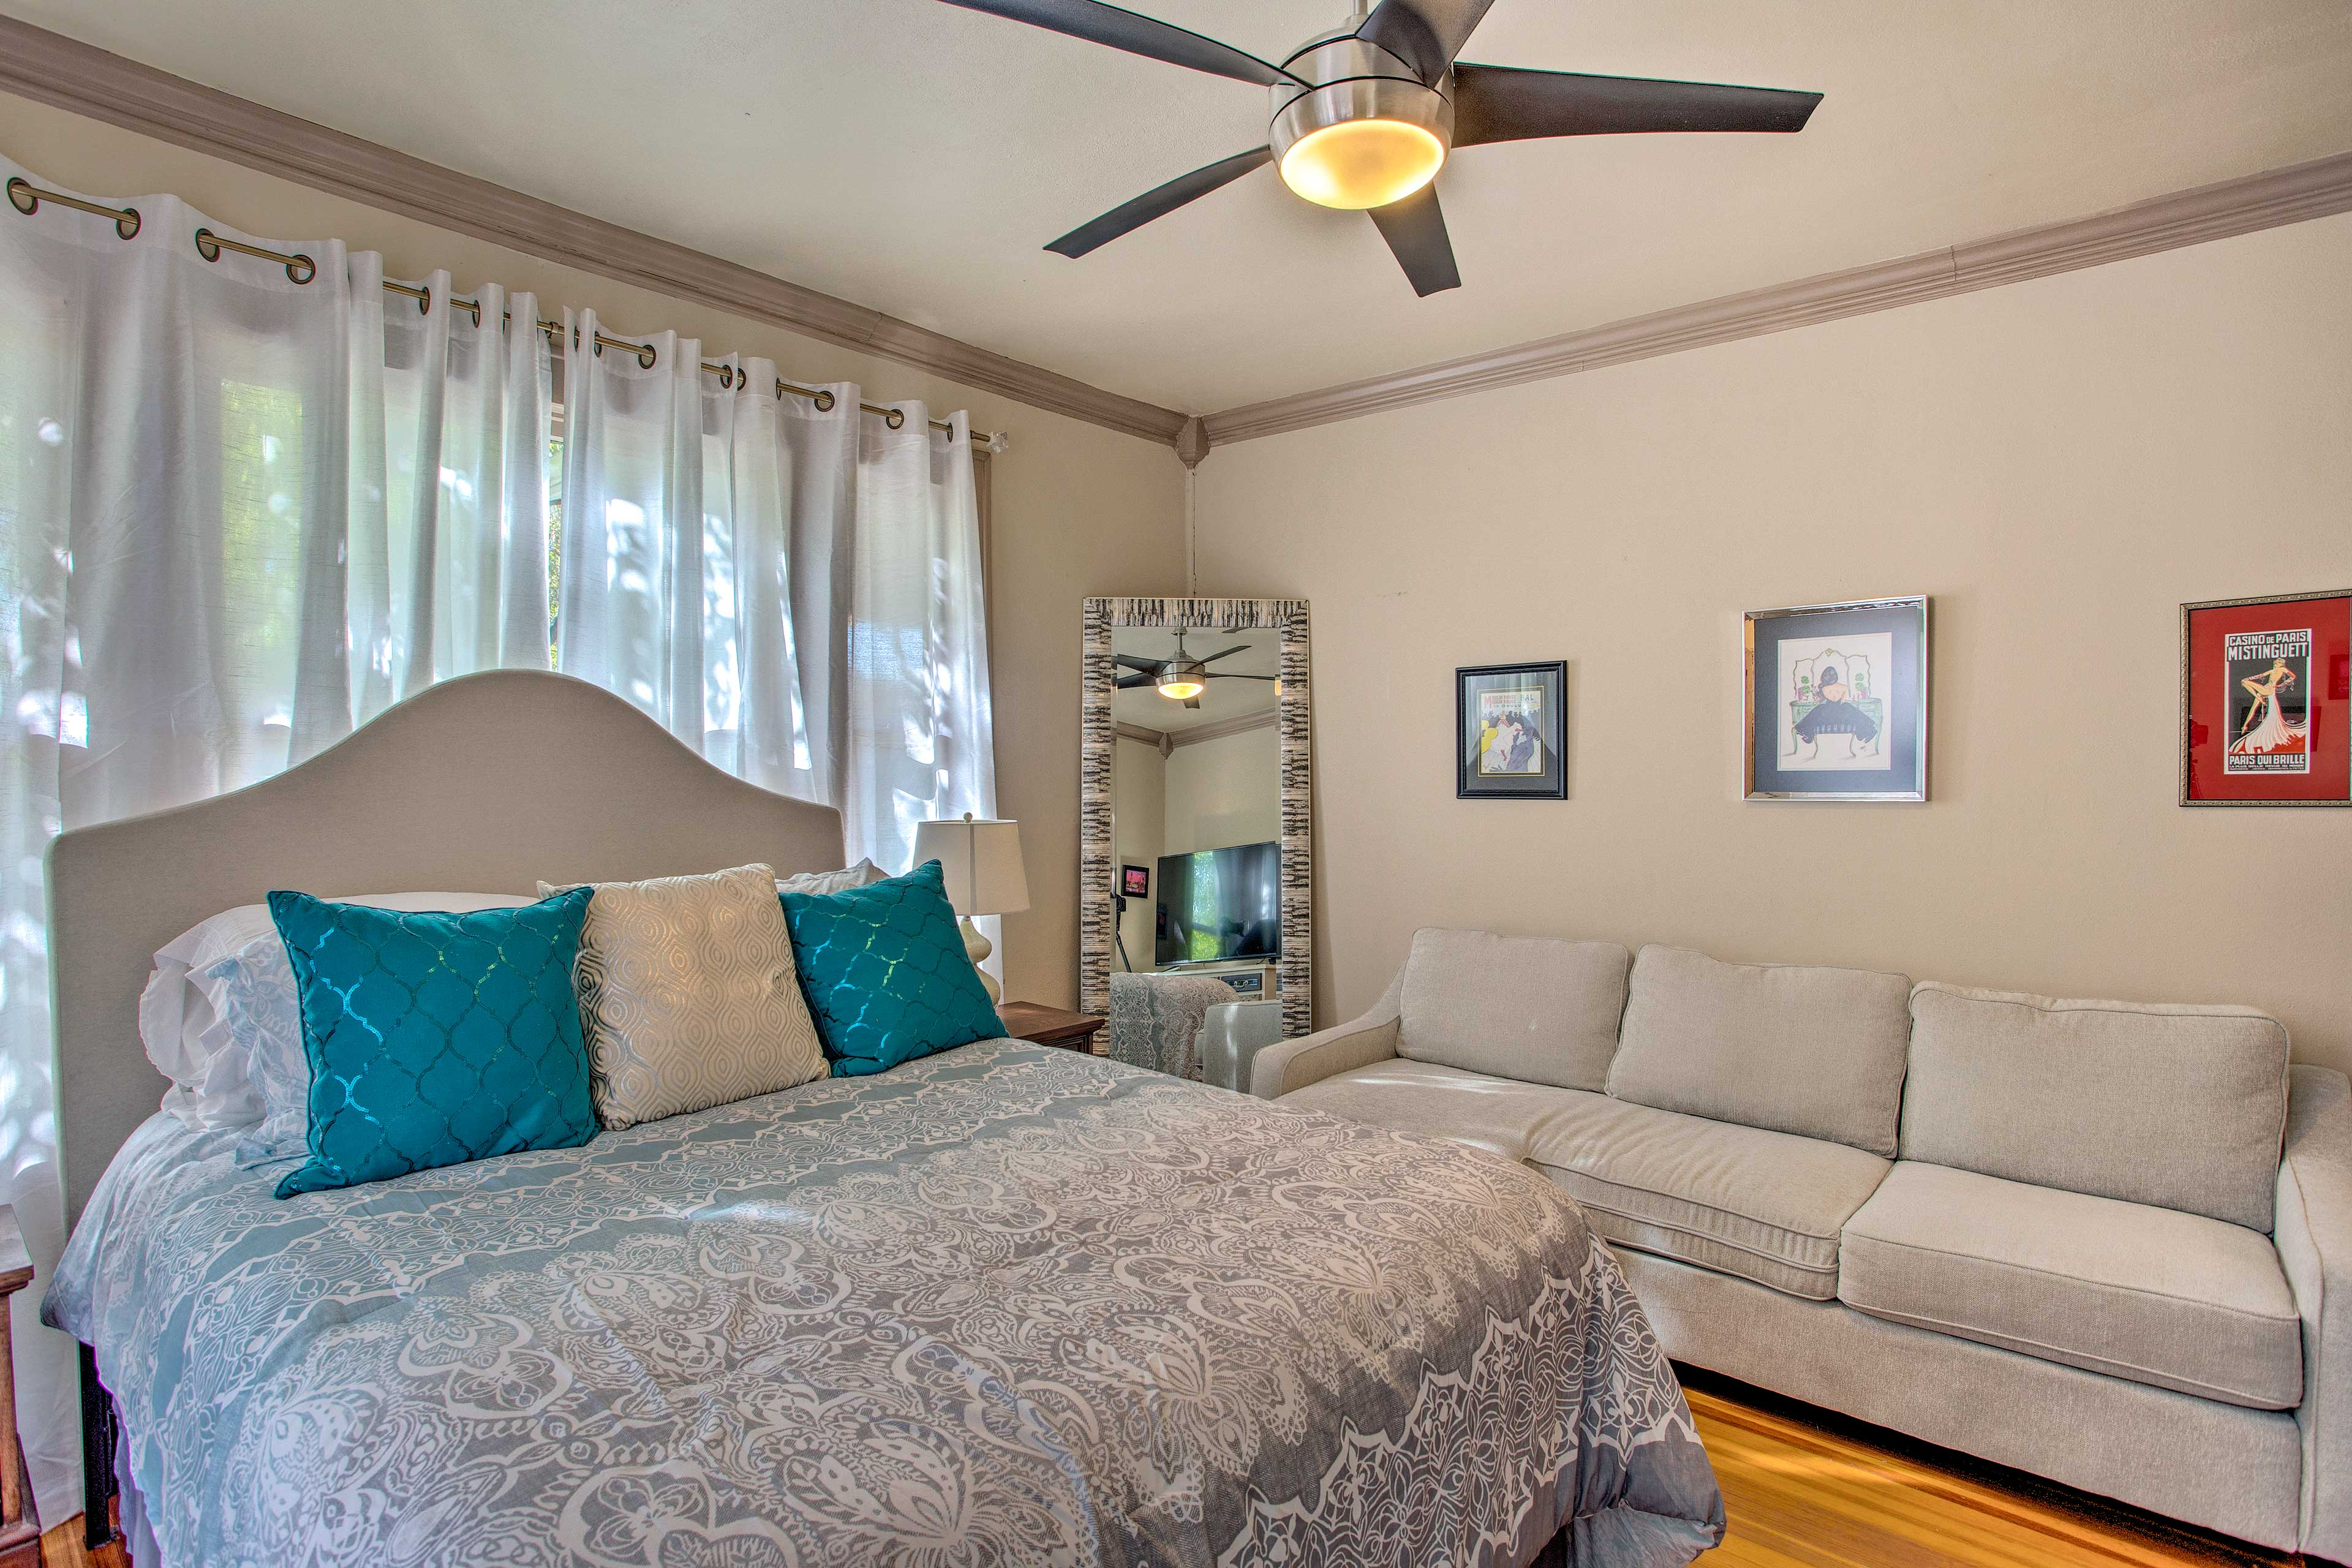 Additional space is available on the air mattress.